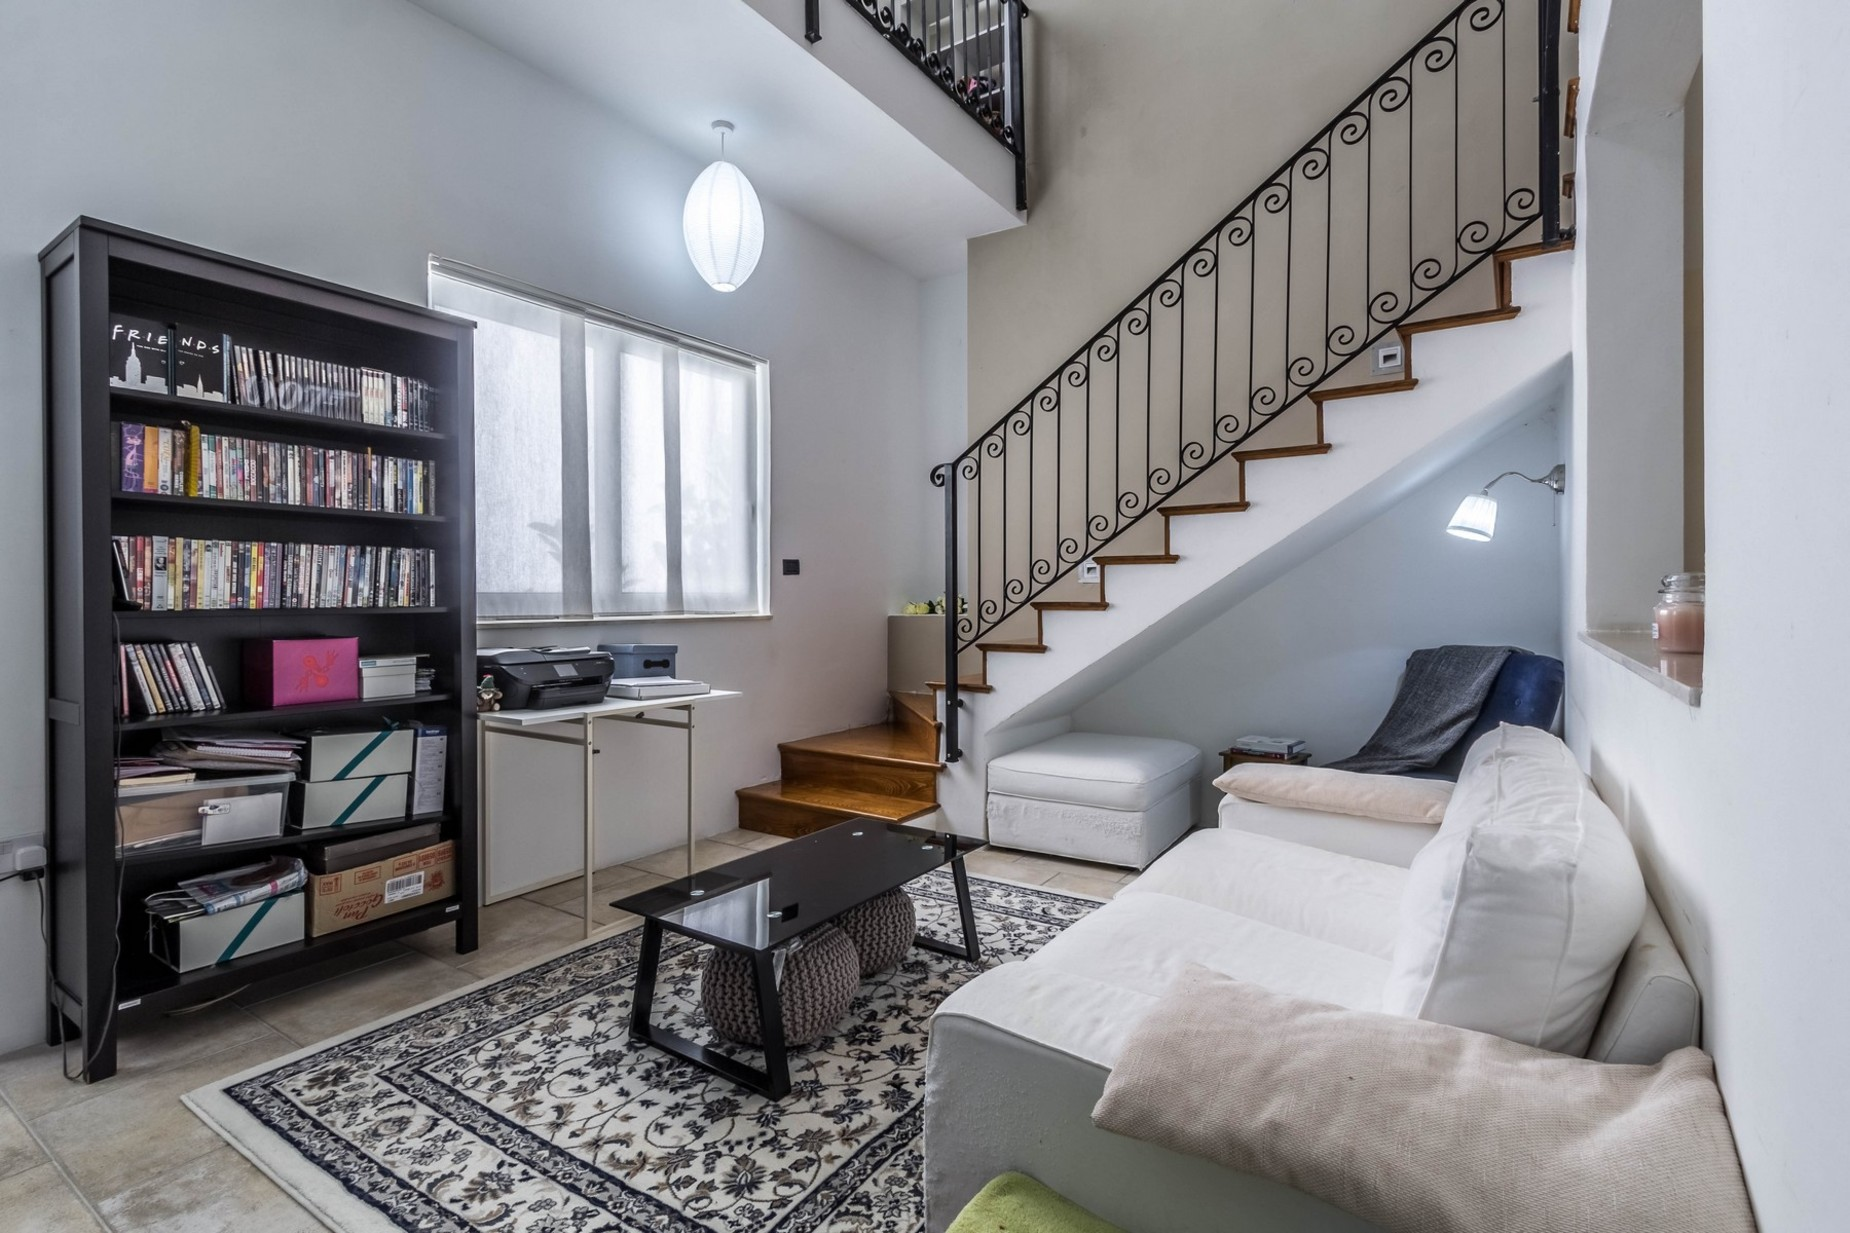 4 bed Town House For Sale in Sliema, Sliema - thumb 11